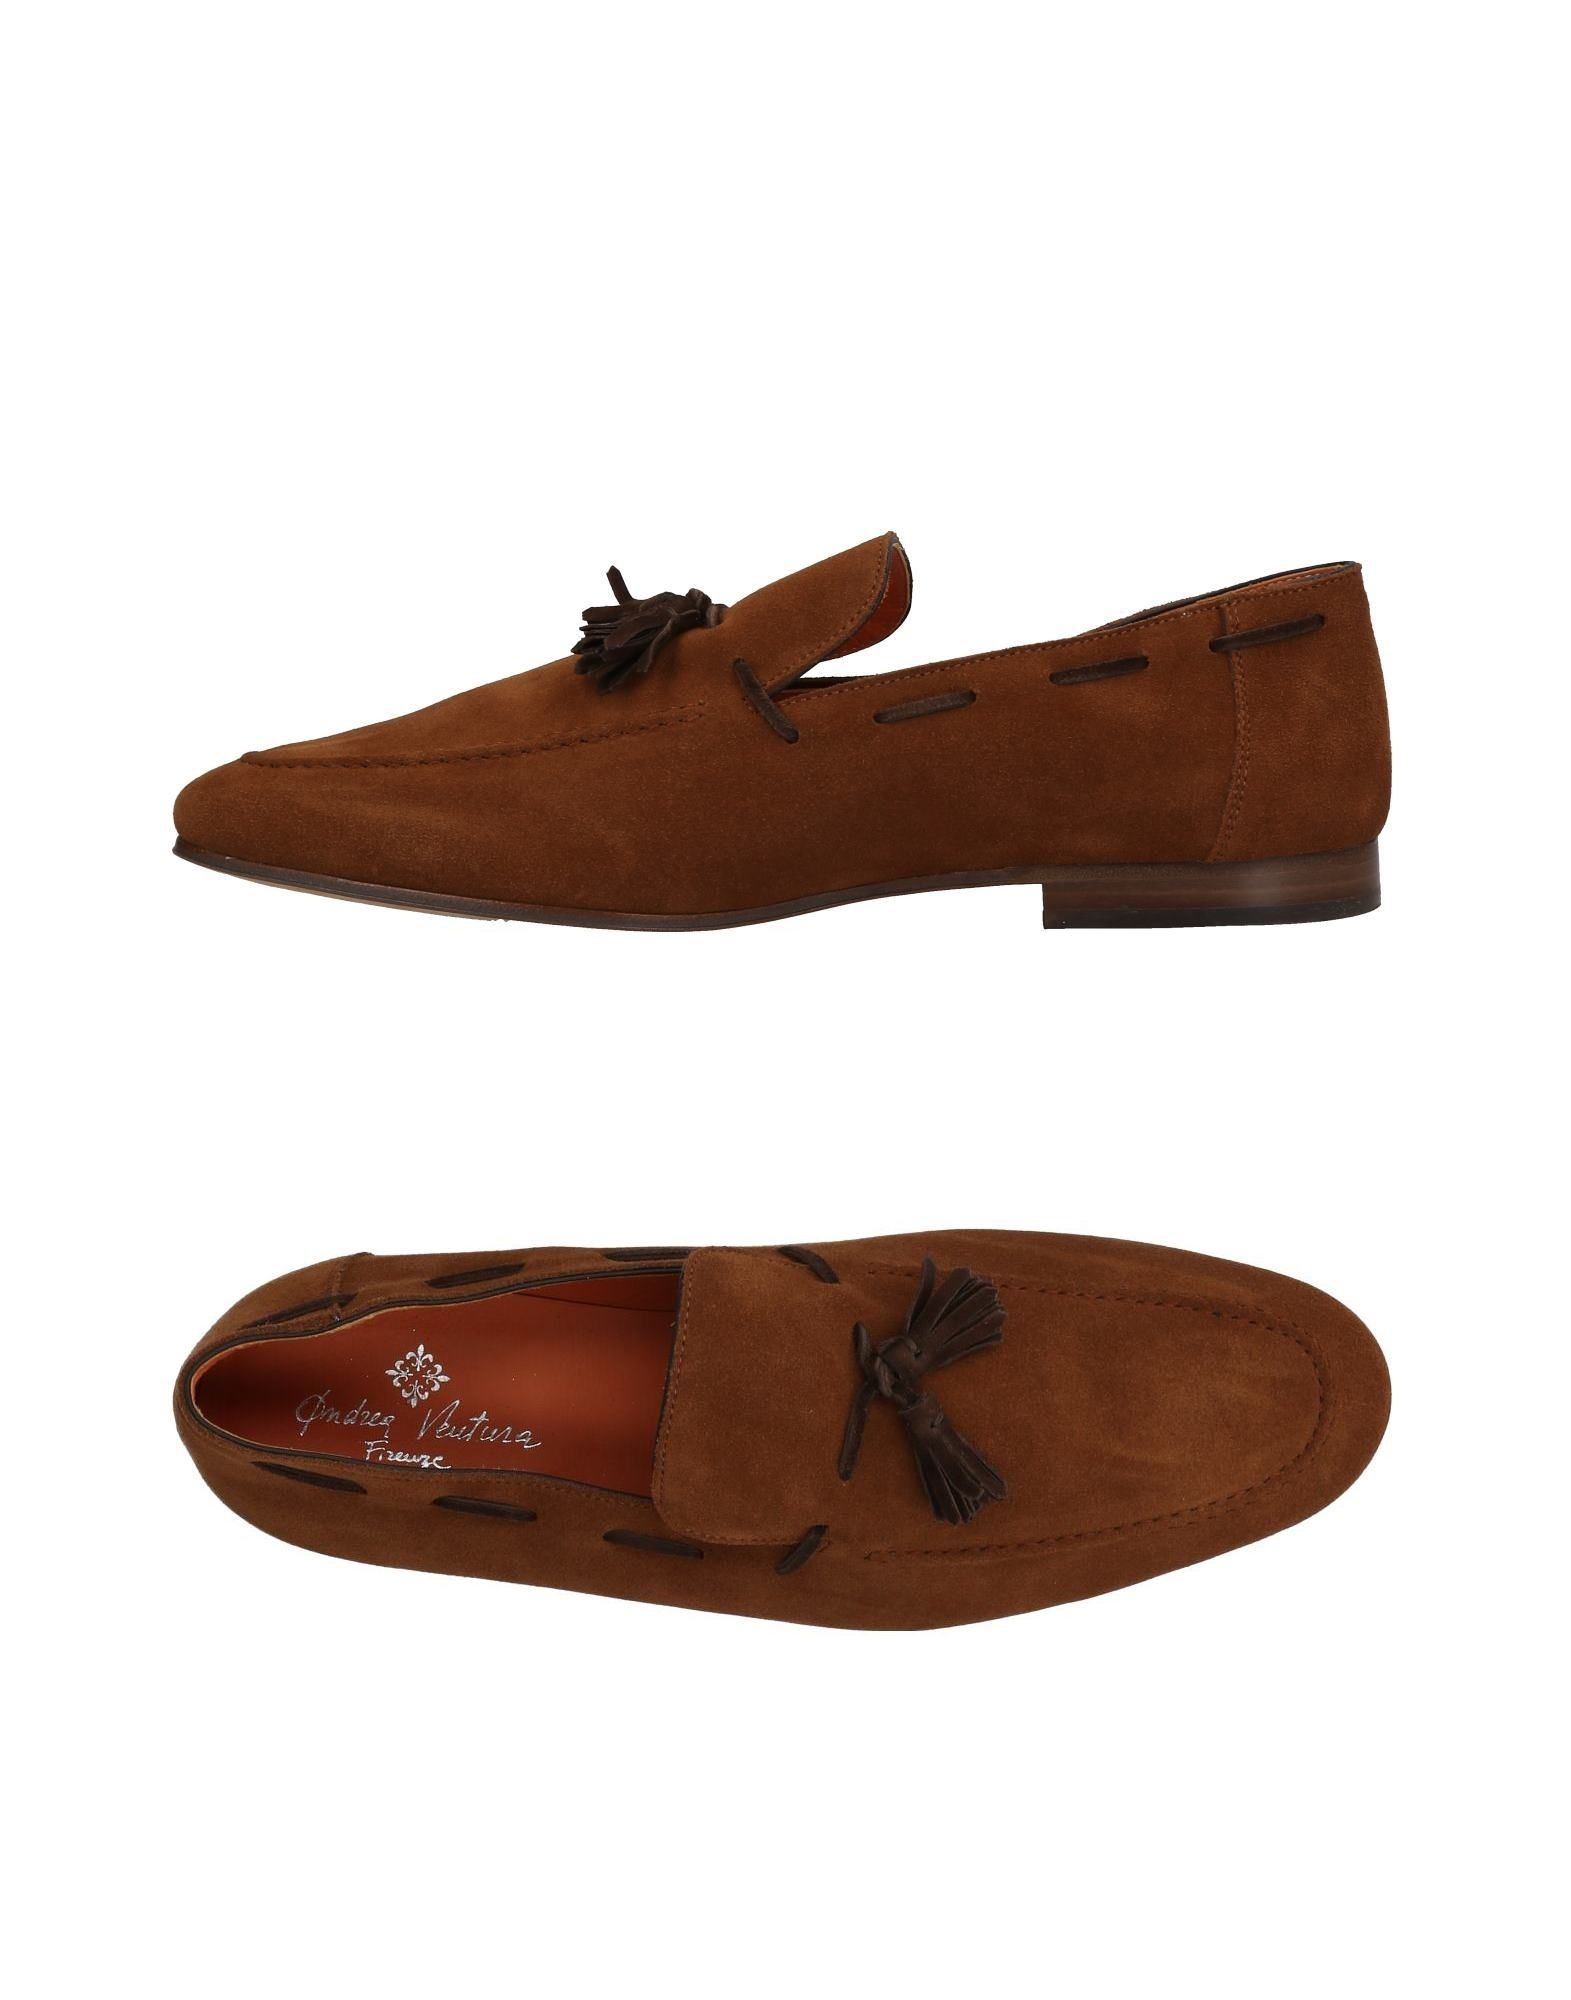 Andrea Ventura Firenze Loafers Loafers Loafers - Men Andrea Ventura Firenze Loafers online on  Canada - 11441753IW 346f26